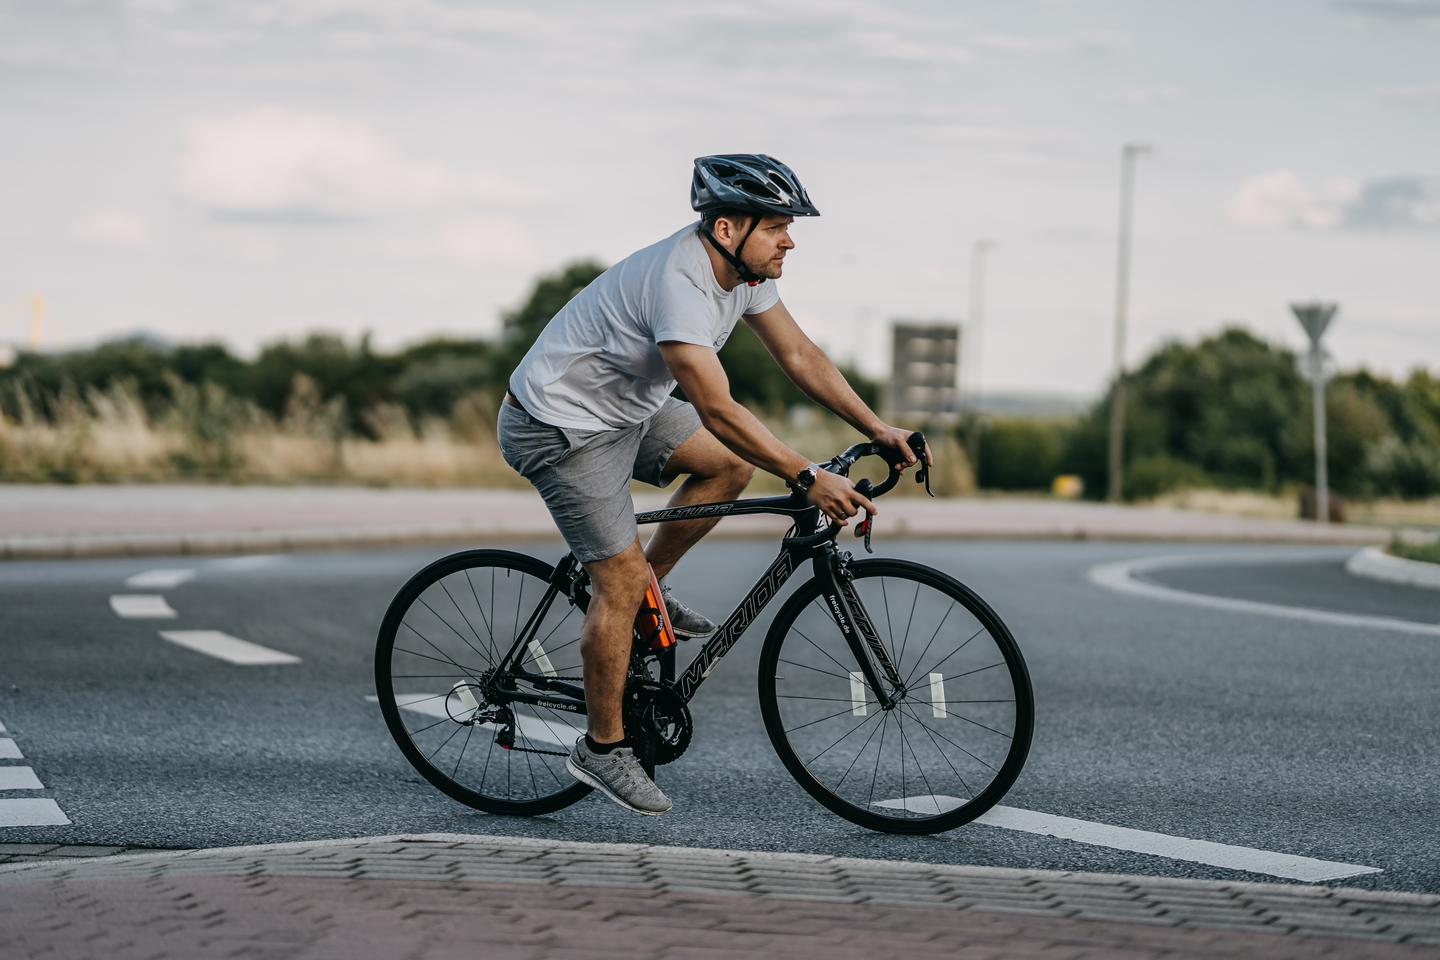 The Freicycle delivers up to 35 km of pedal-assist riding